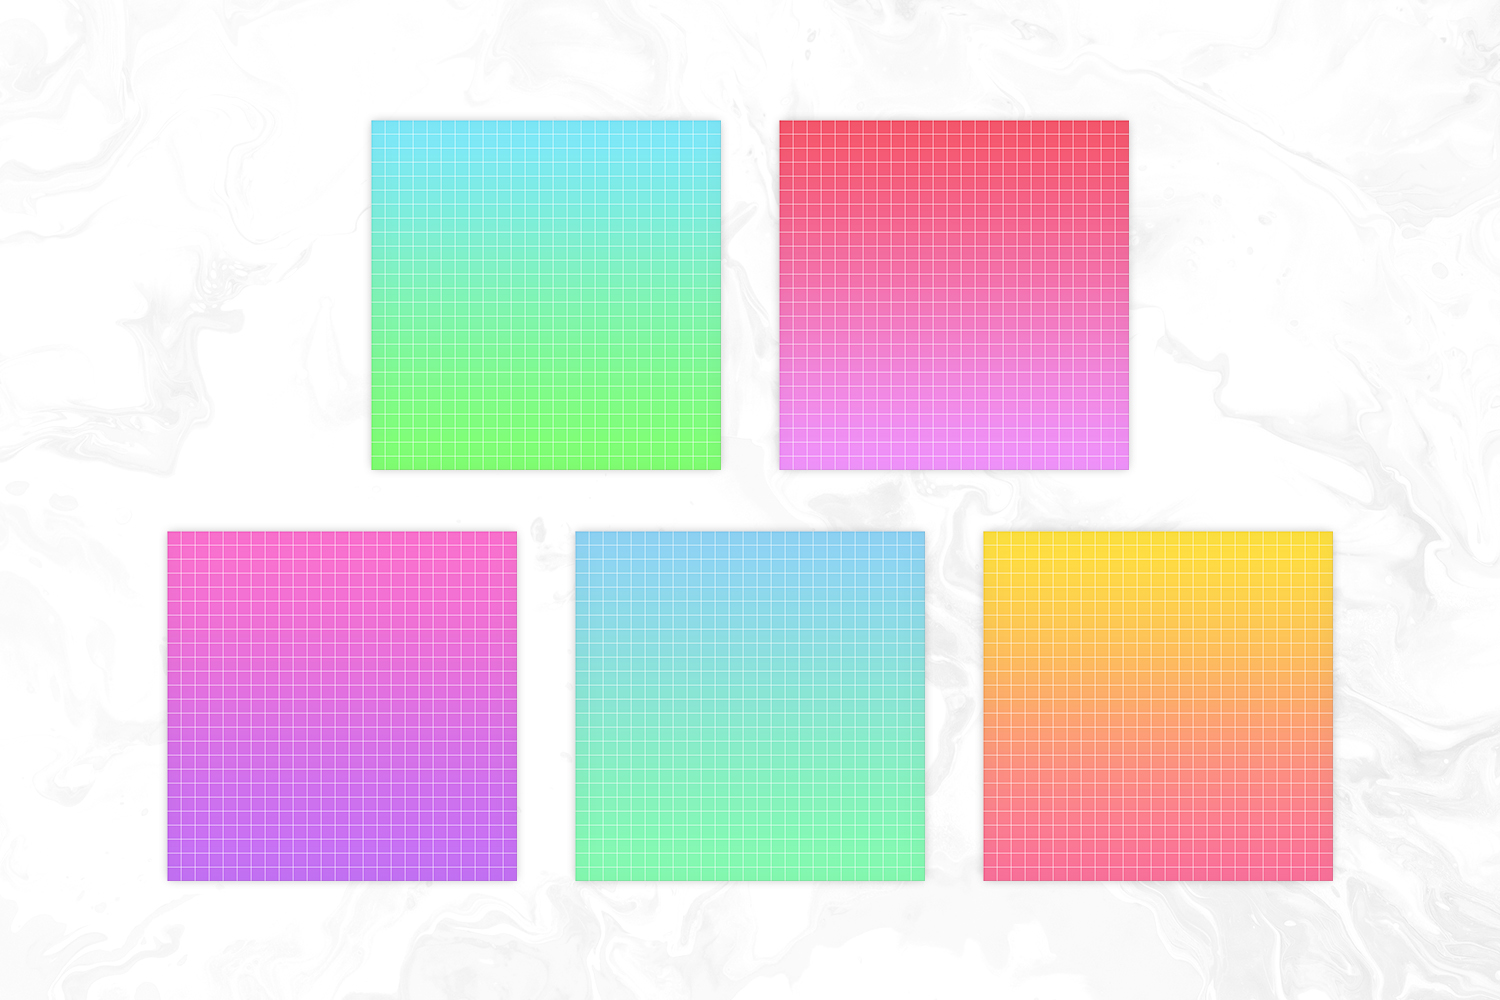 Seapunk Inspired Bright Gradient Big Grid Backgrounds example image 2